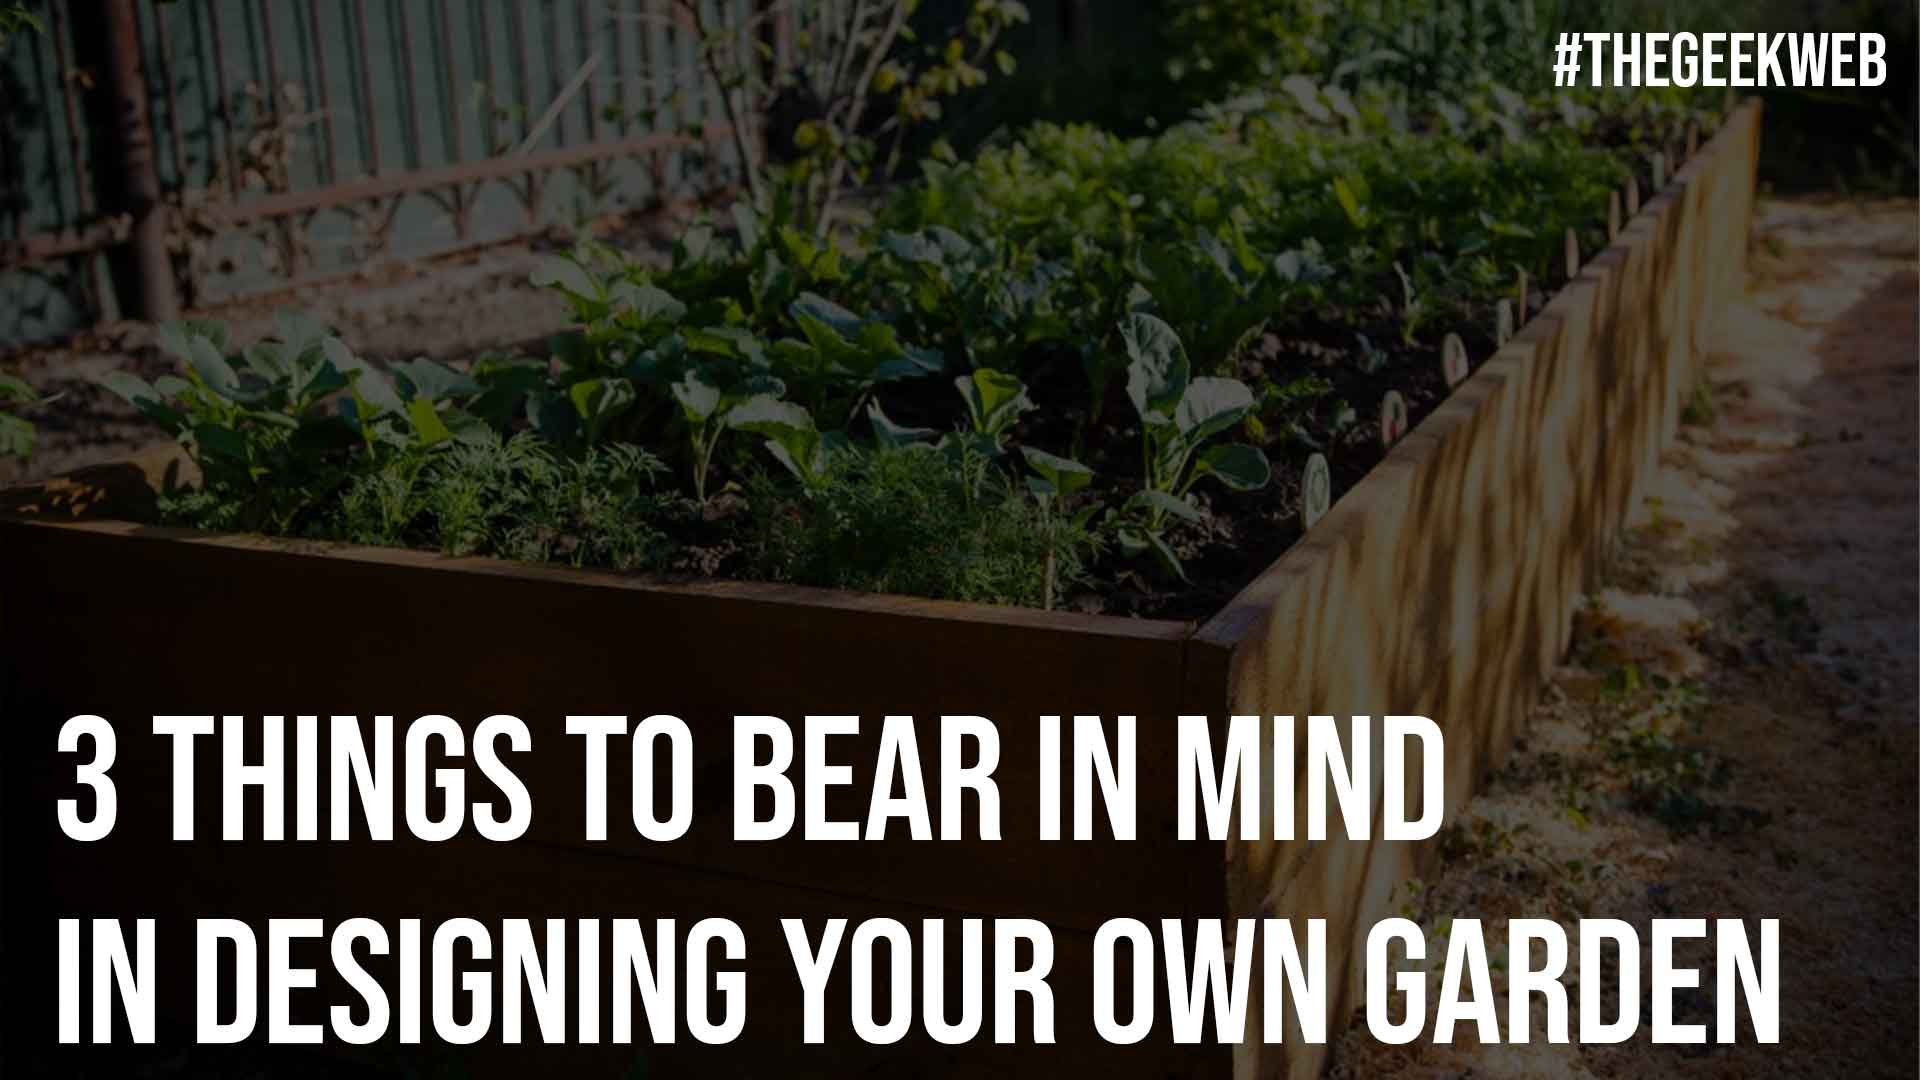 3 Things To Bear In Mind In Designing Your Own Garden